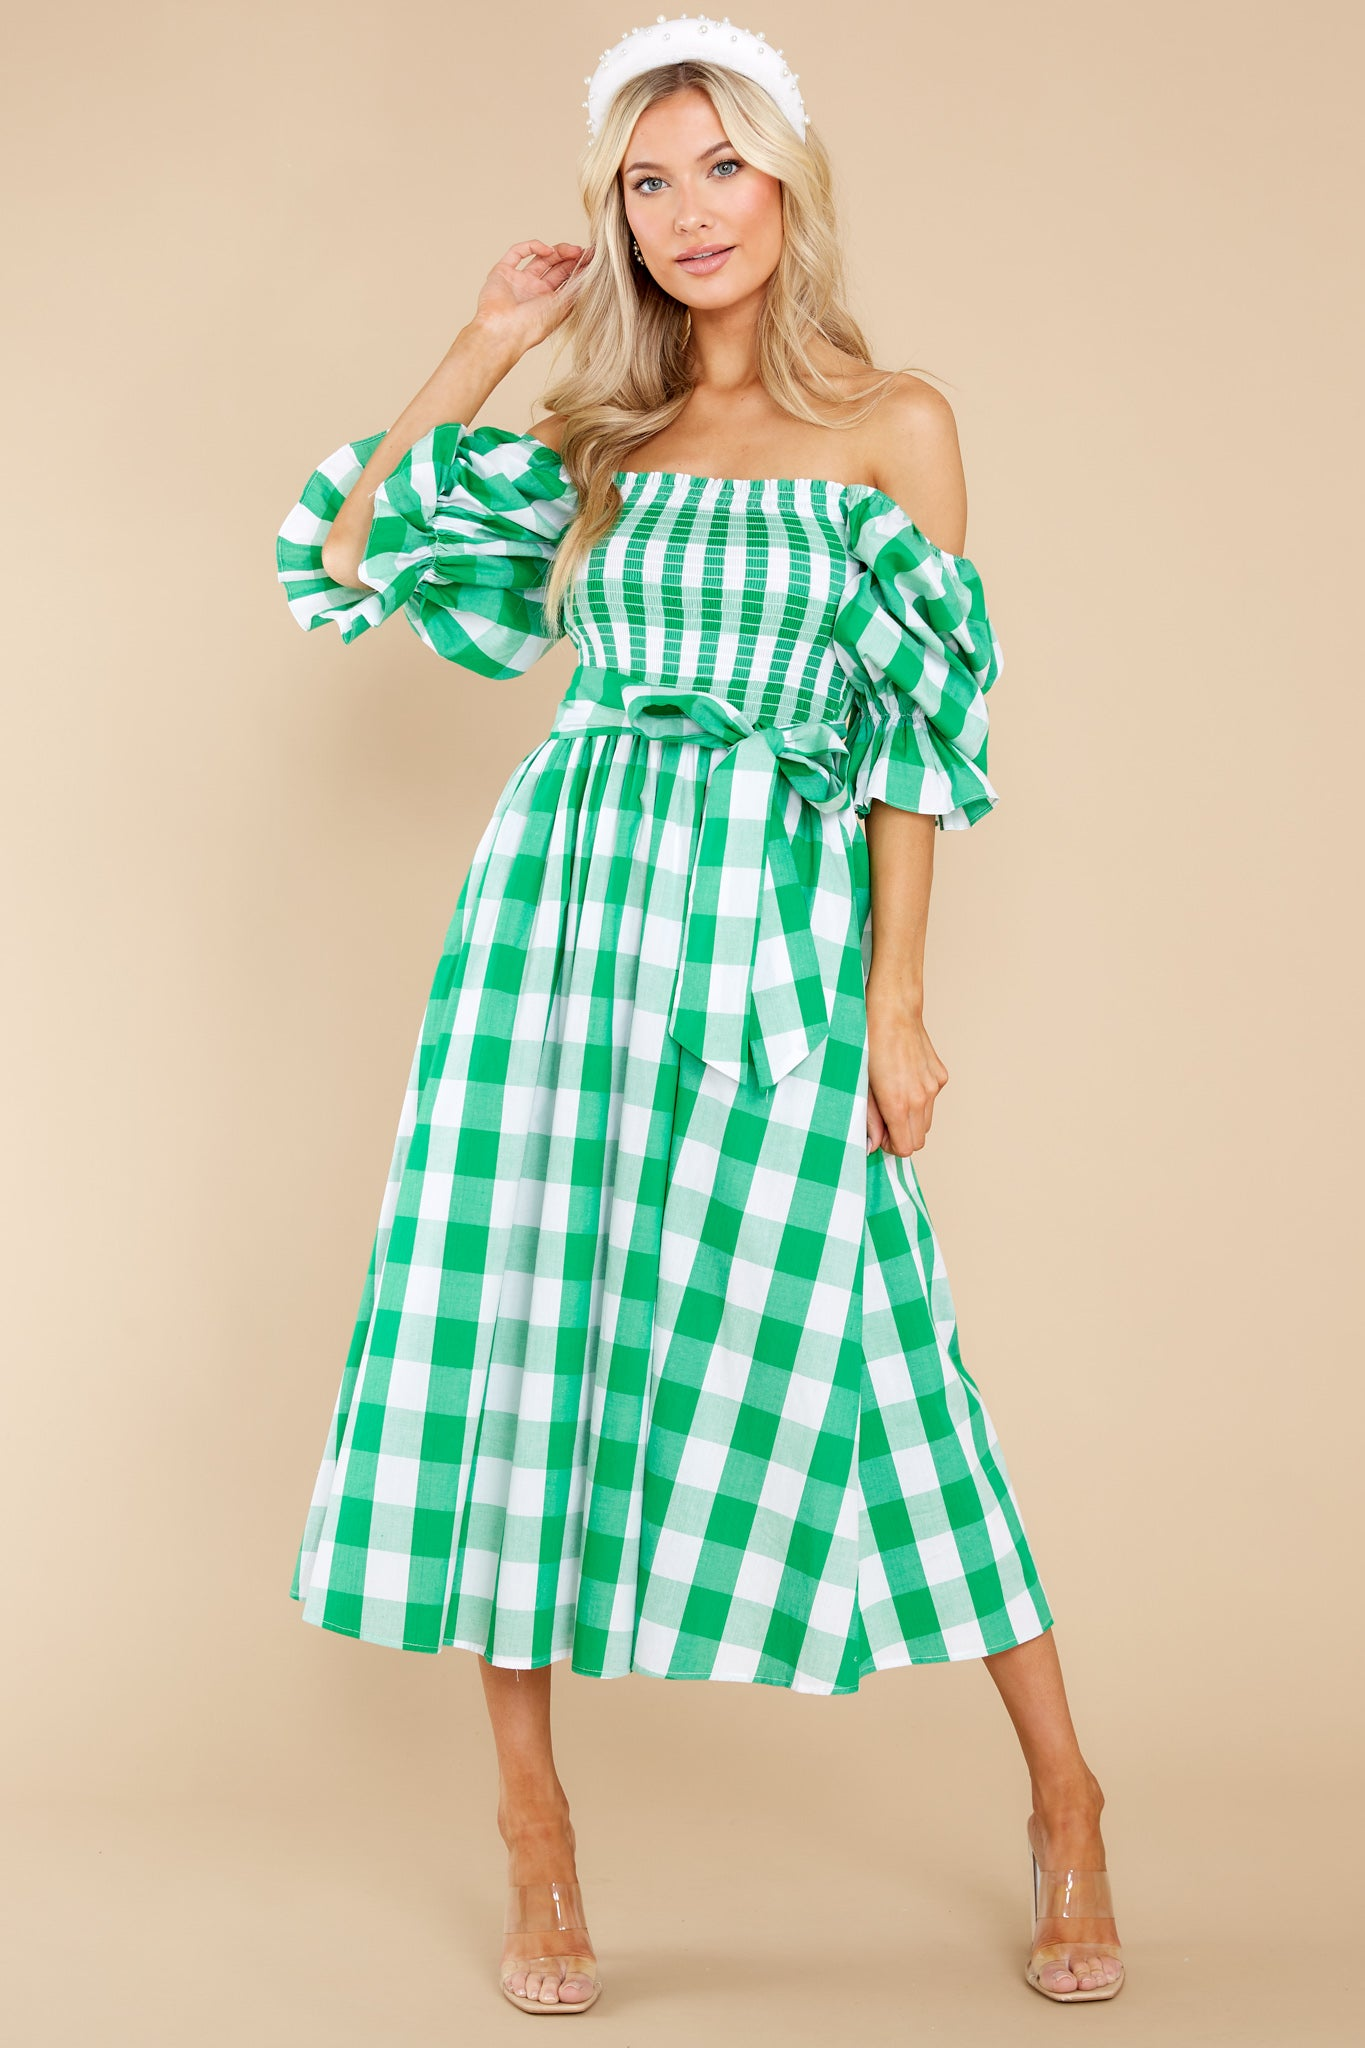 Cottagecore Dresses – Aesthetic, Granny, Vintage Aura Dignity And Grace Green Gingham Midi Dress $64.00 AT vintagedancer.com